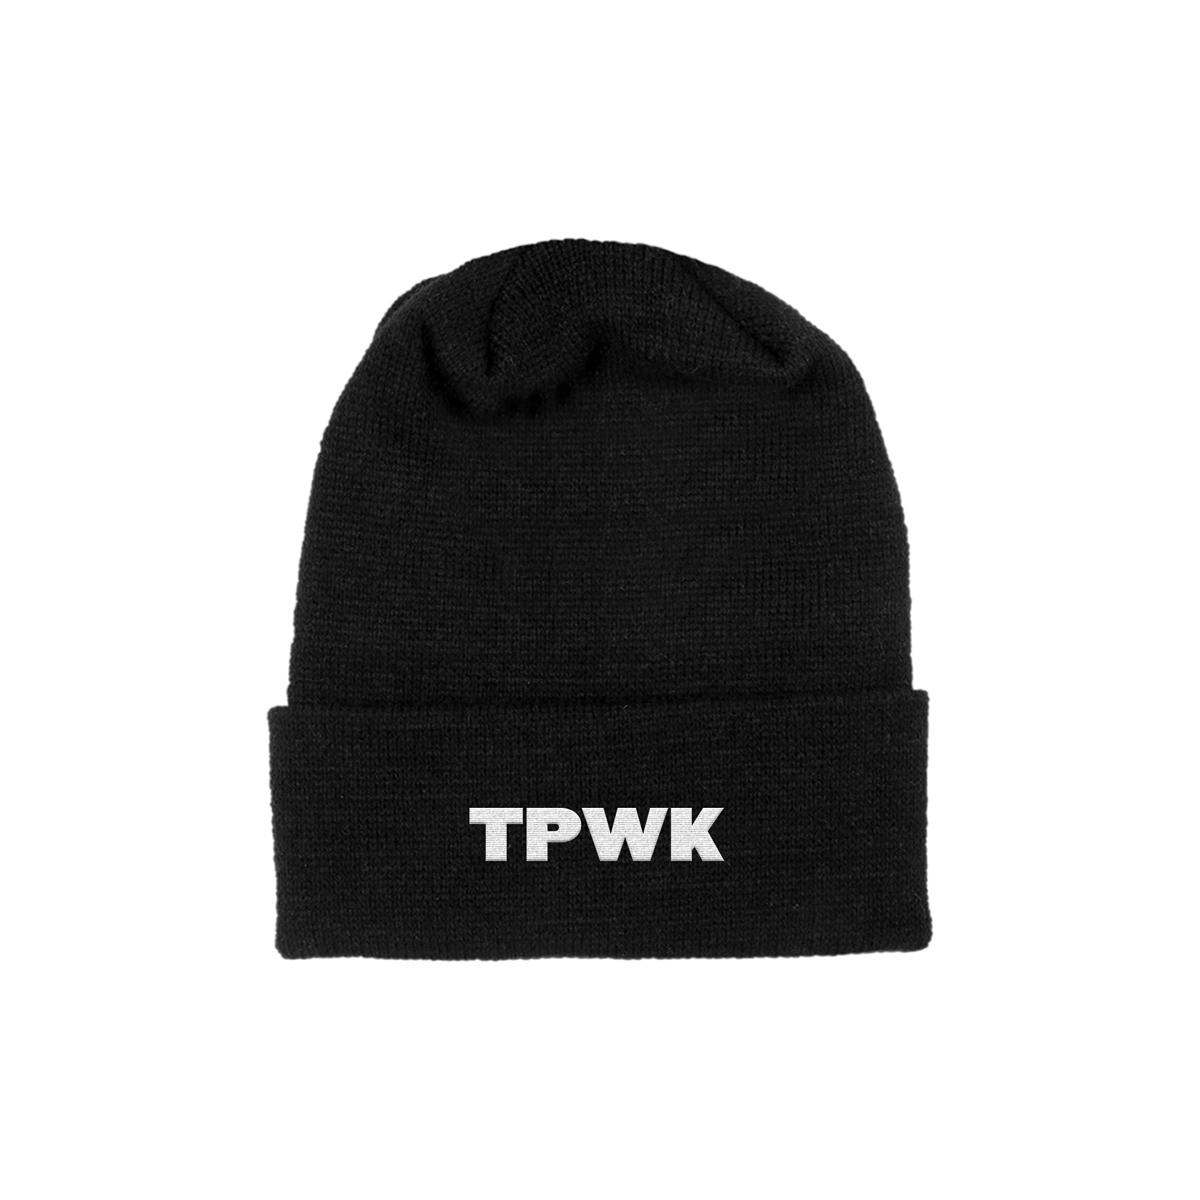 Treat People With Kindness Cuff Beanie - Harry Styles Australia